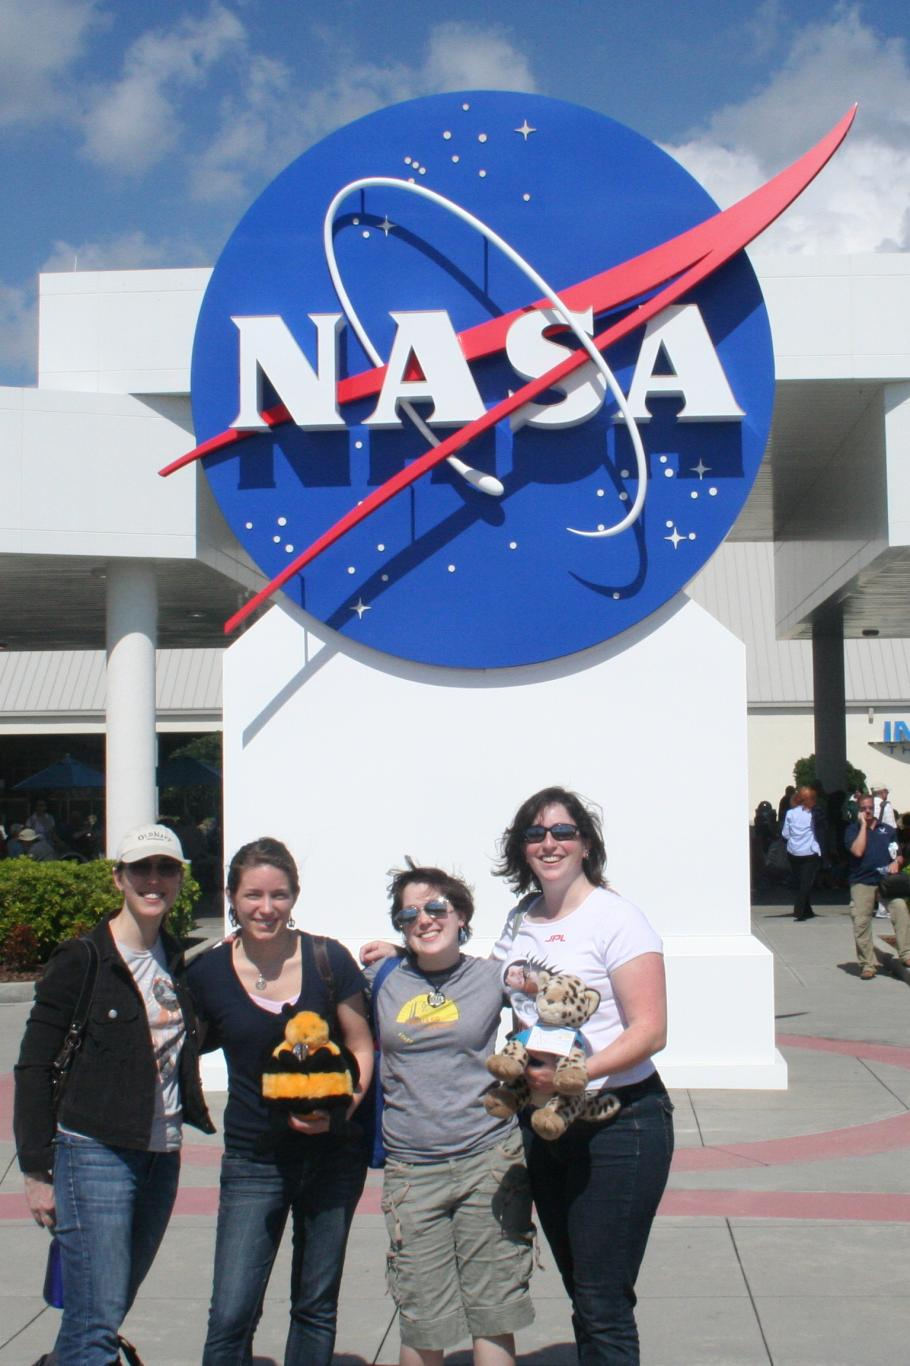 Visitors at the Kennedy Space Center